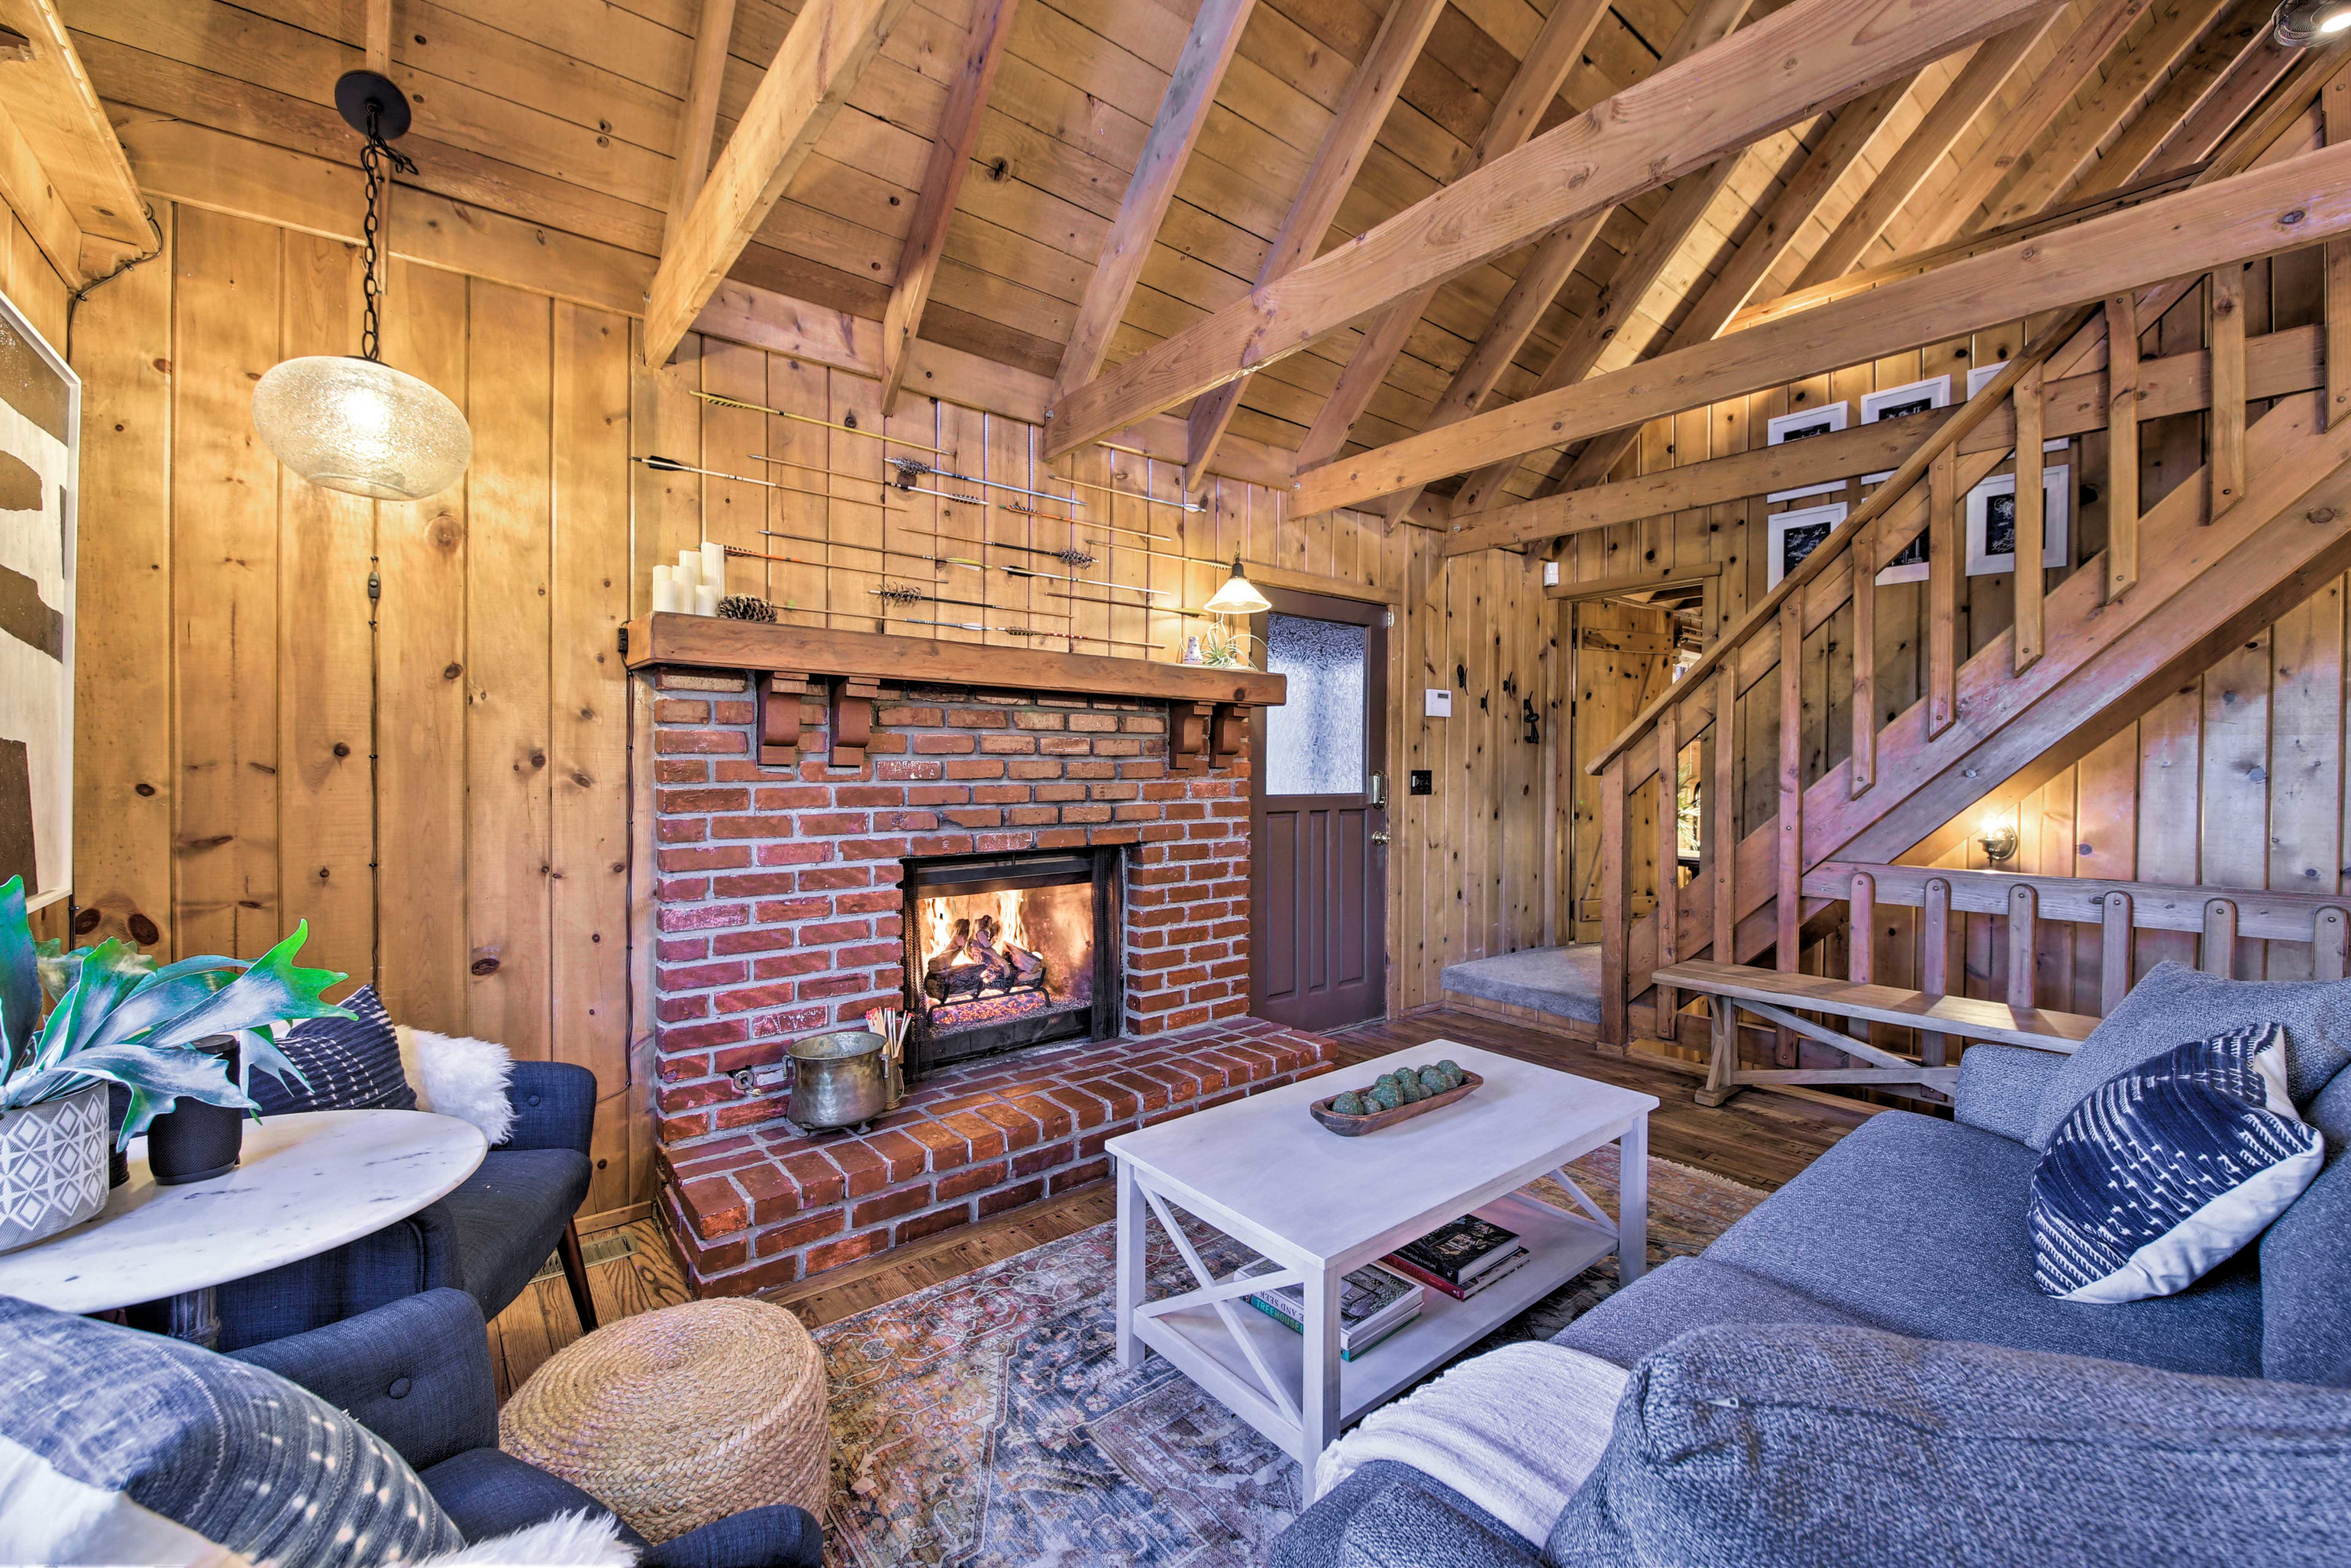 Note the intricate arrow design above the rustic fireplace.